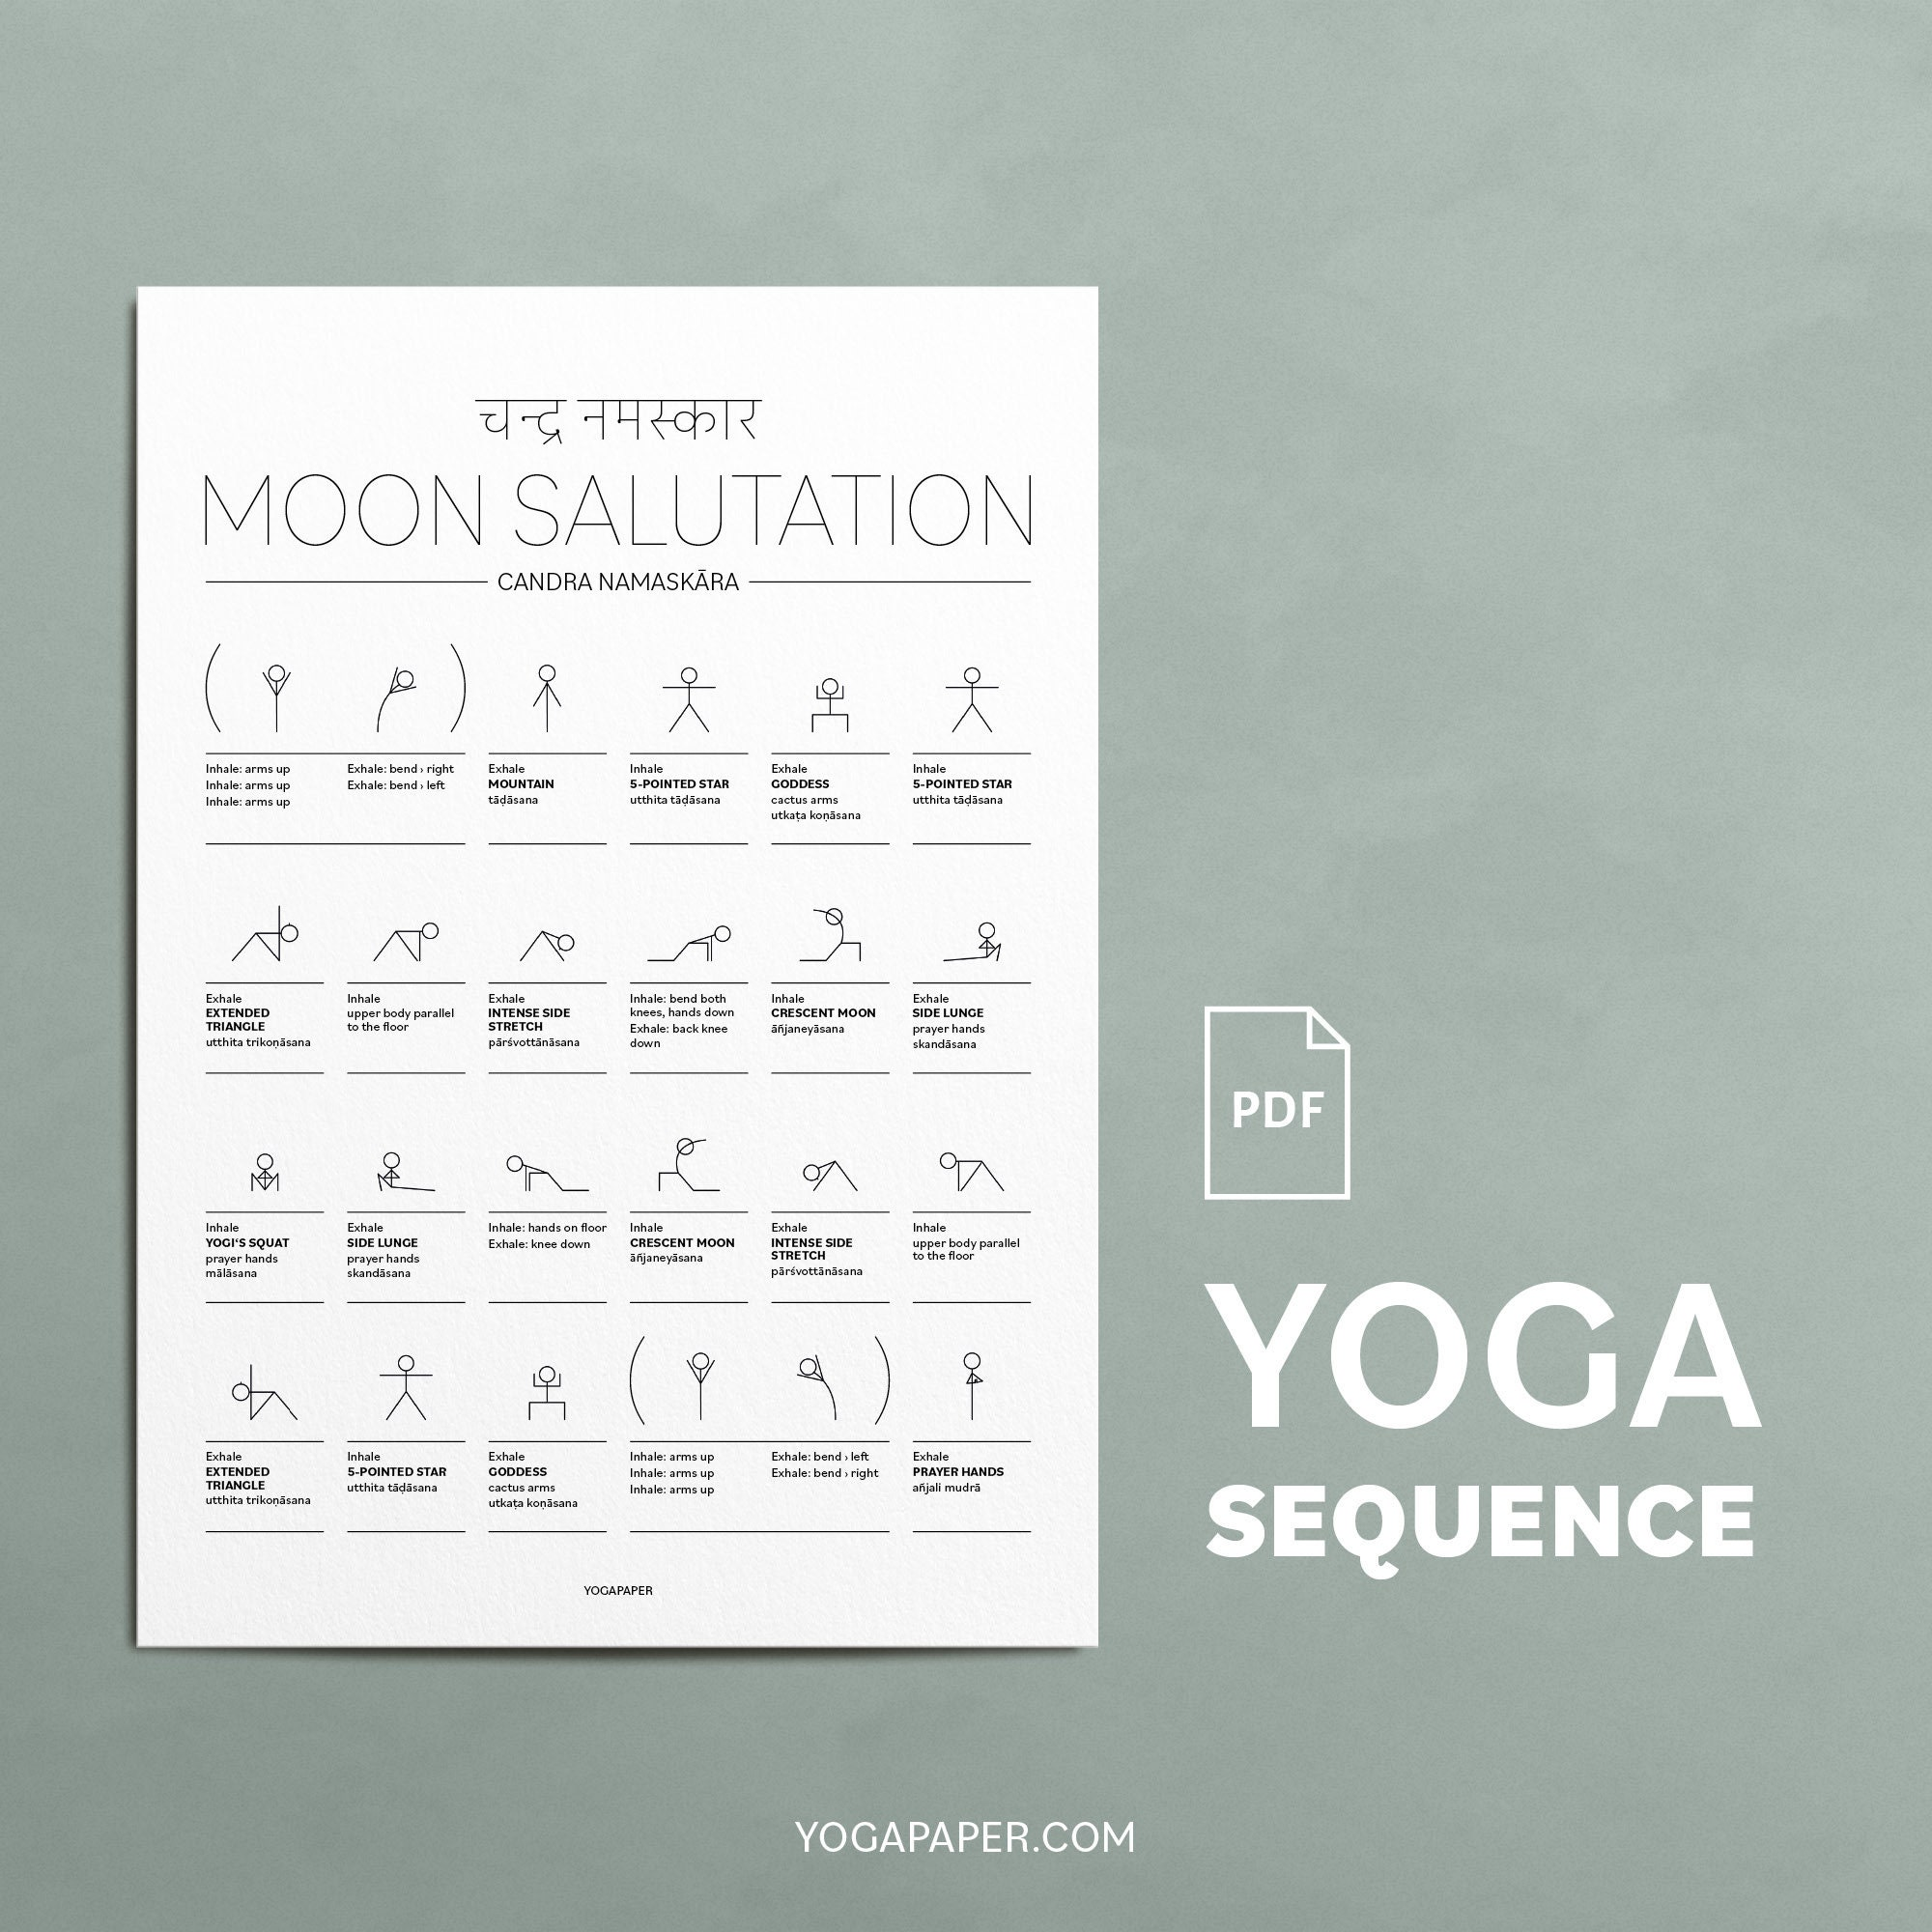 Moon Salutation Yoga Sequence PDF Printable Download for the Sequence of  Chandra Namaskara Step By Step, DIN A50, Letter